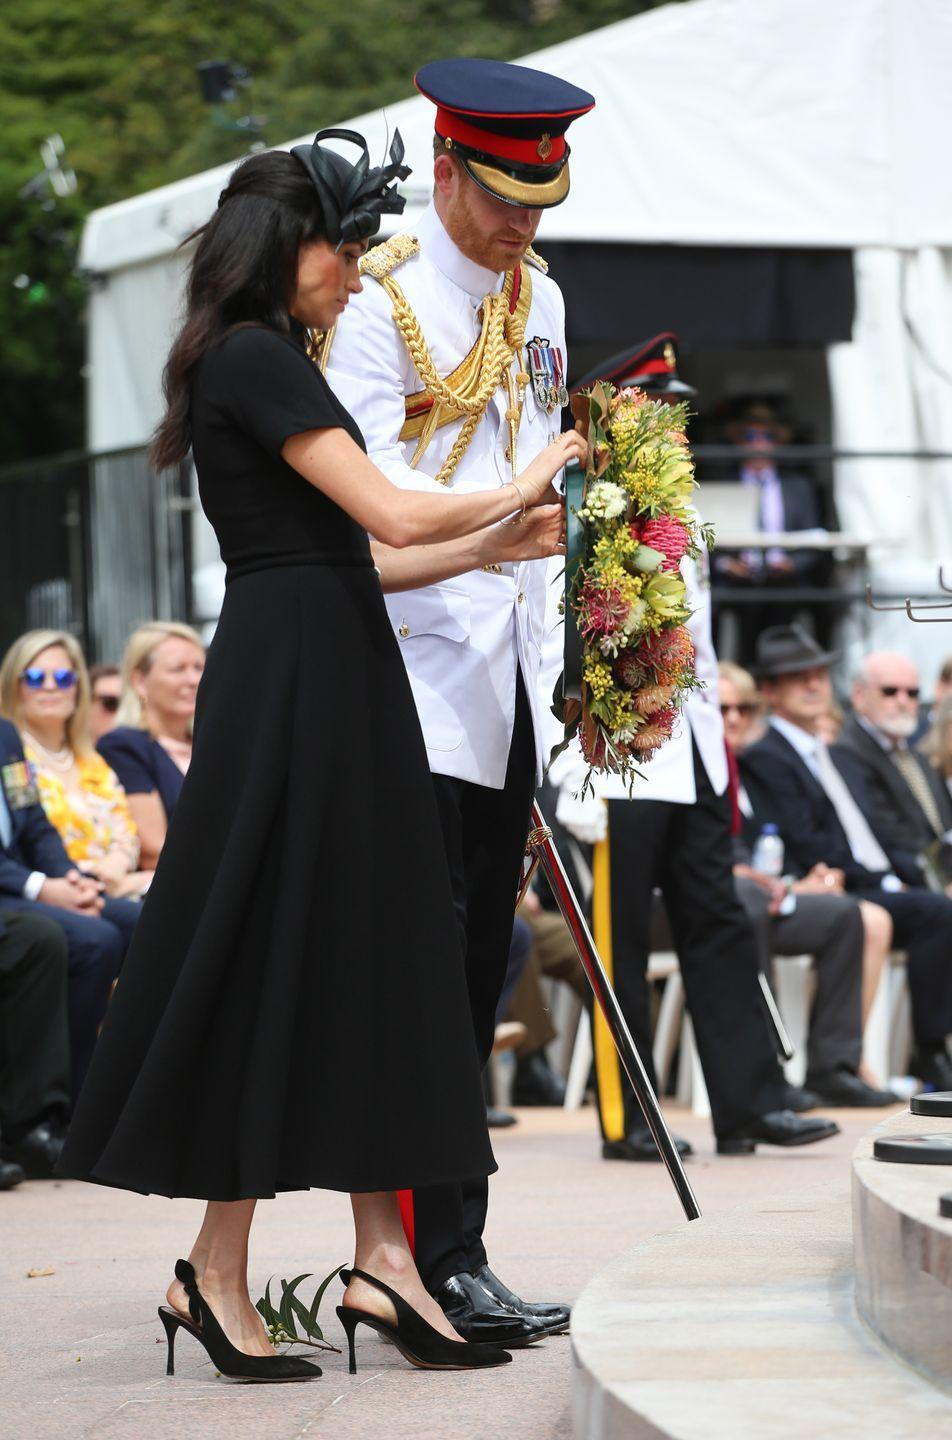 <p>The couple attended a ceremony at the ANZAC memorial where they left a wreath in honor of Australian soldiers killed in World War I. </p>